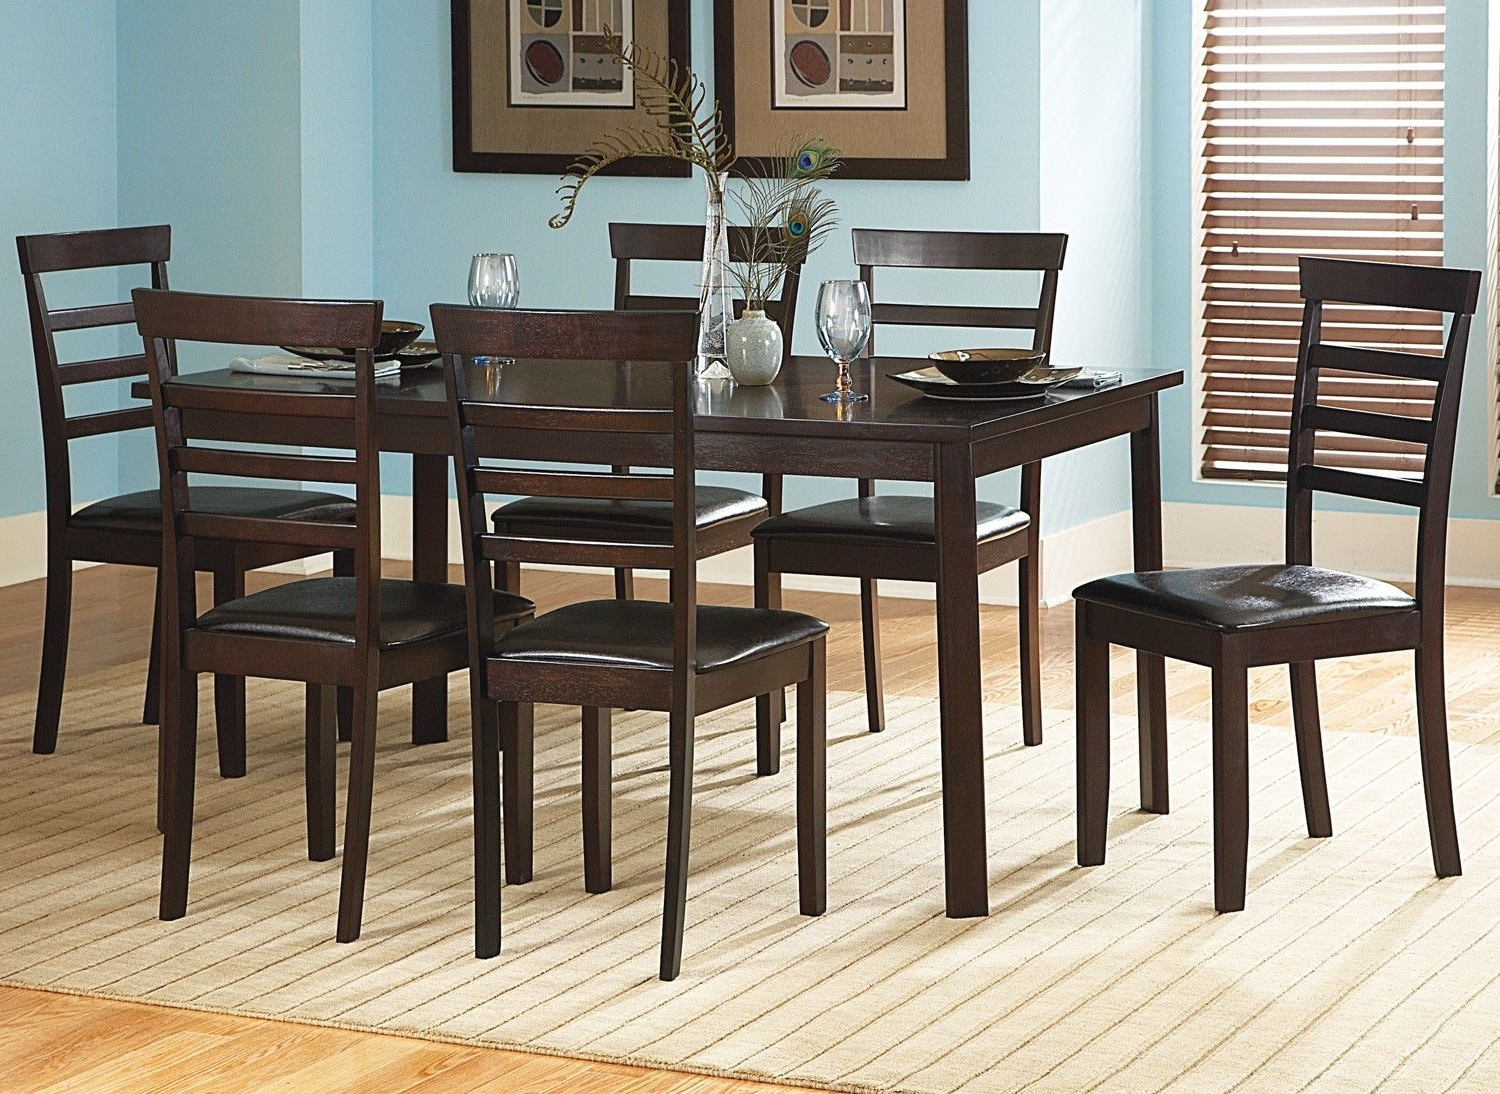 Famous Victoria Casual Dining 7 Pc (View 24 of 25)